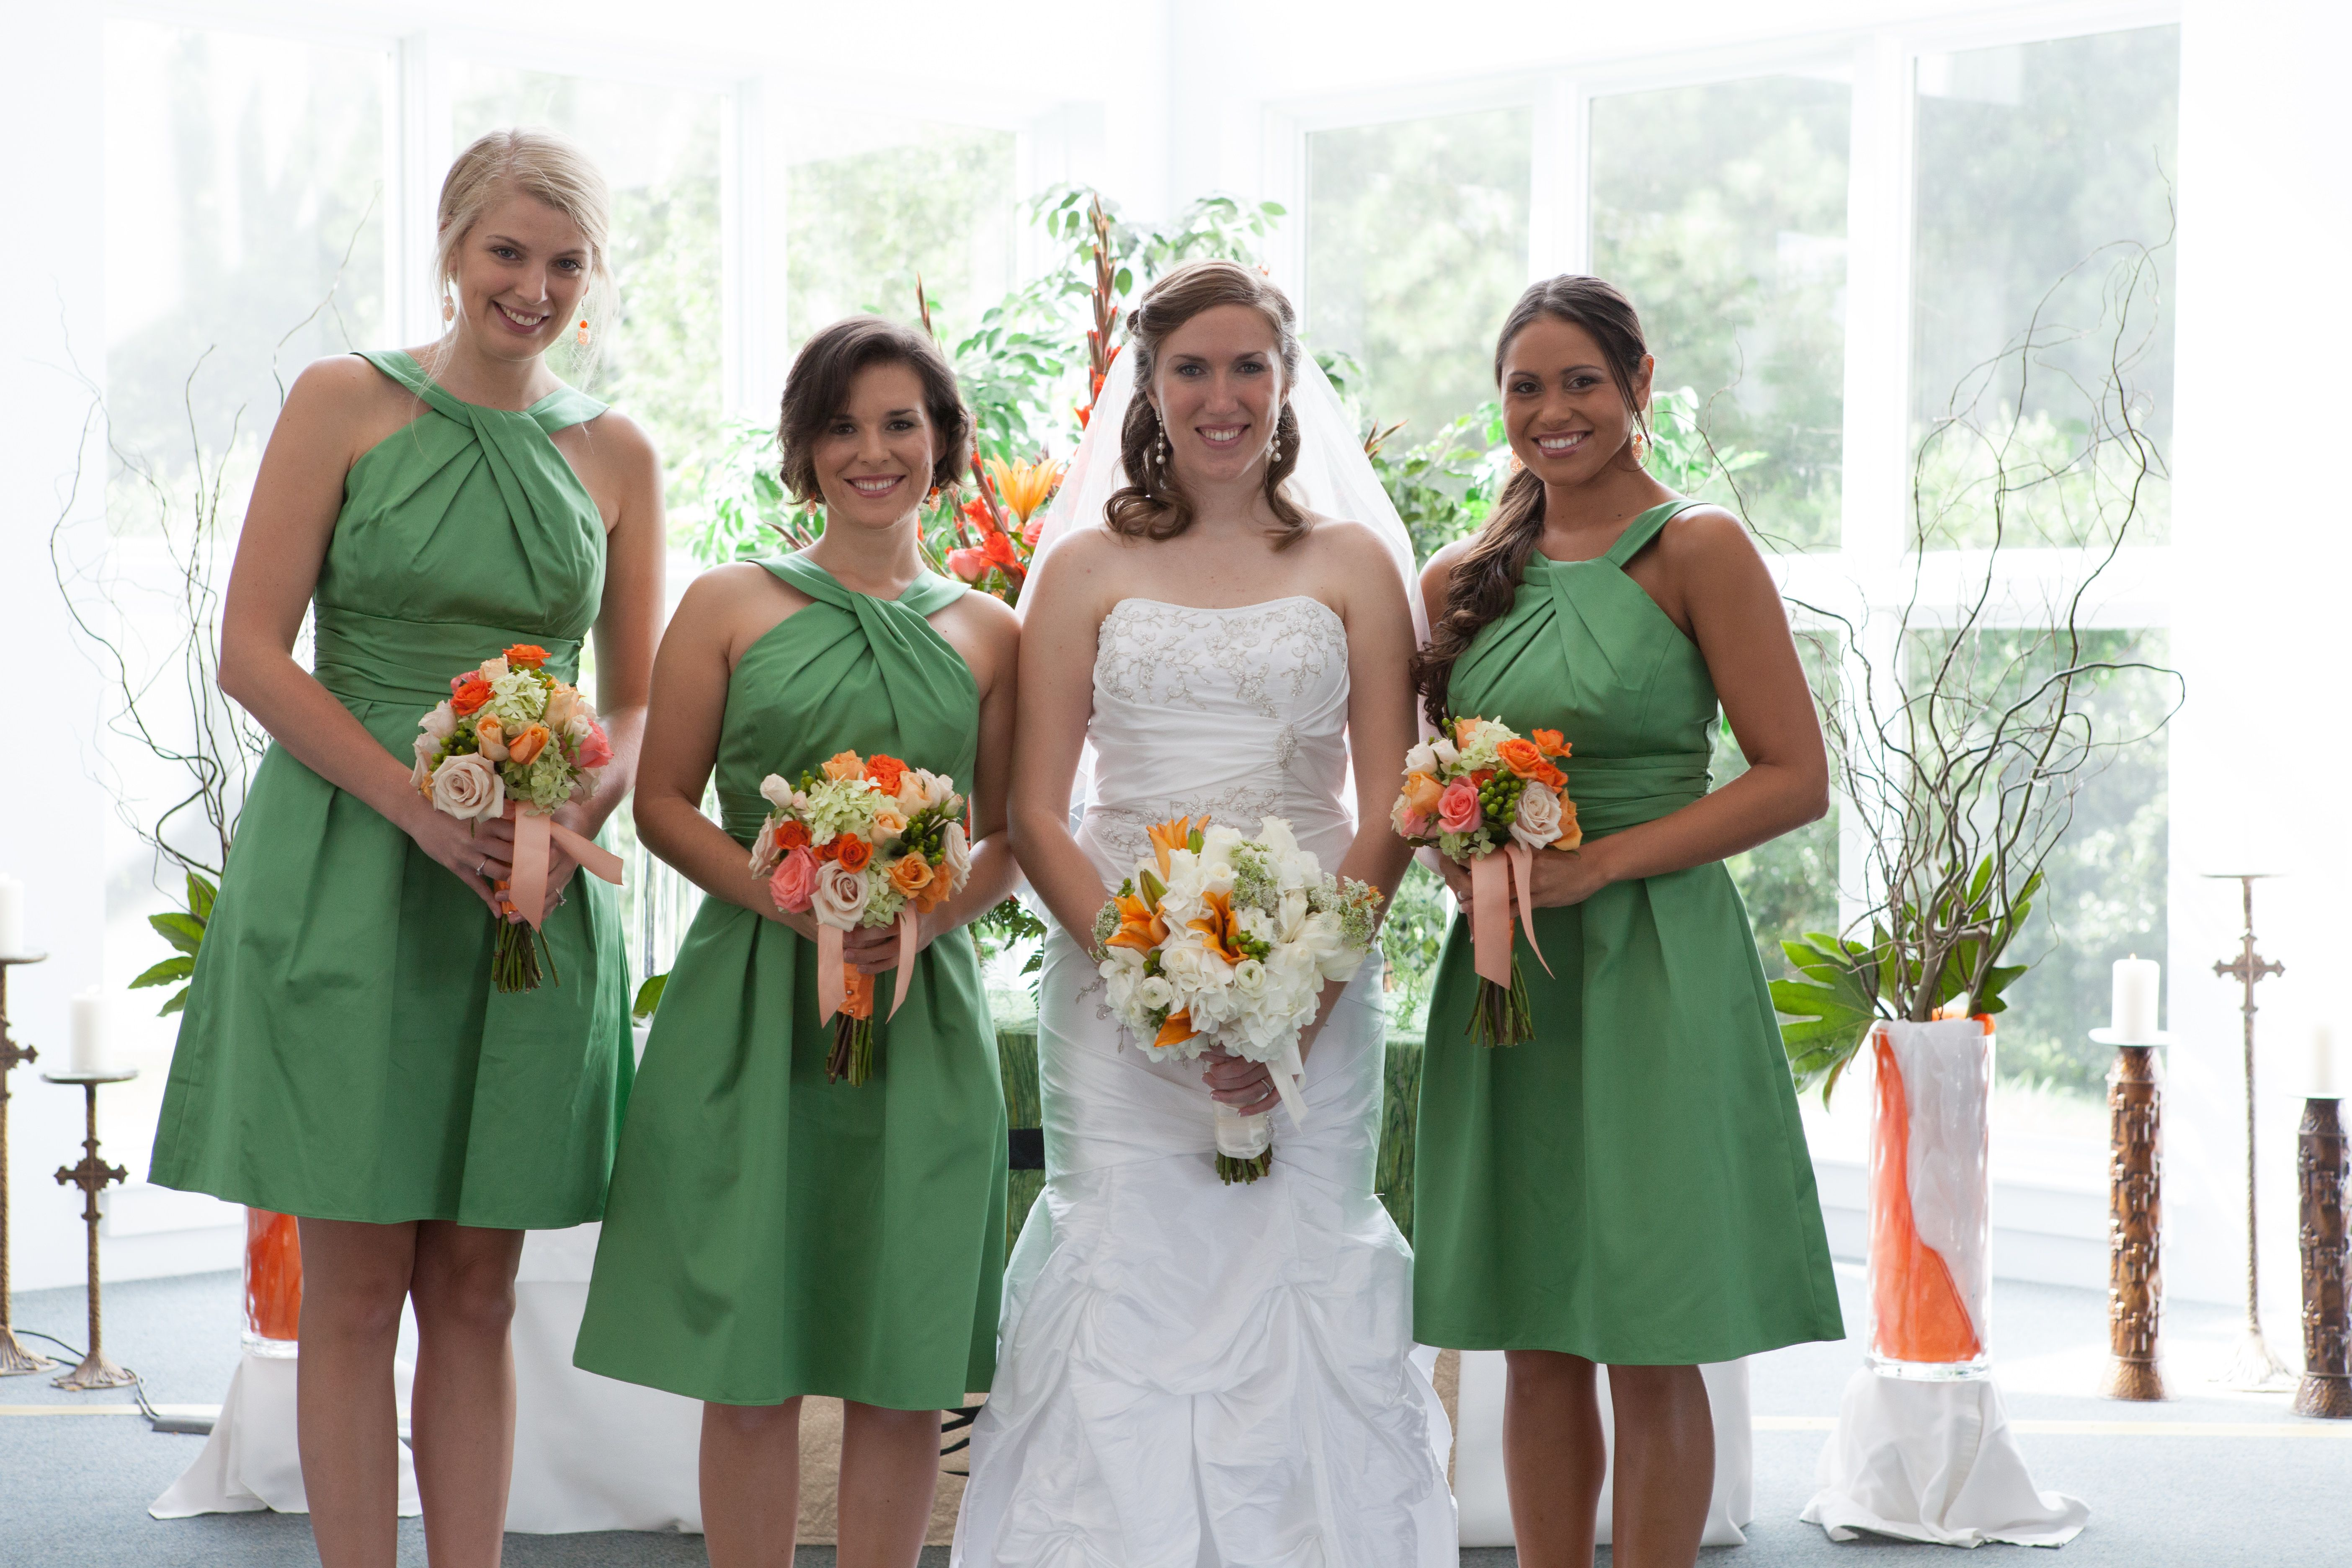 Green bridesmaids dresses and orange and coral rose bouquets mews green bridesmaids dresses and orange and coral rose bouquets mews designs wedding florals ombrellifo Images